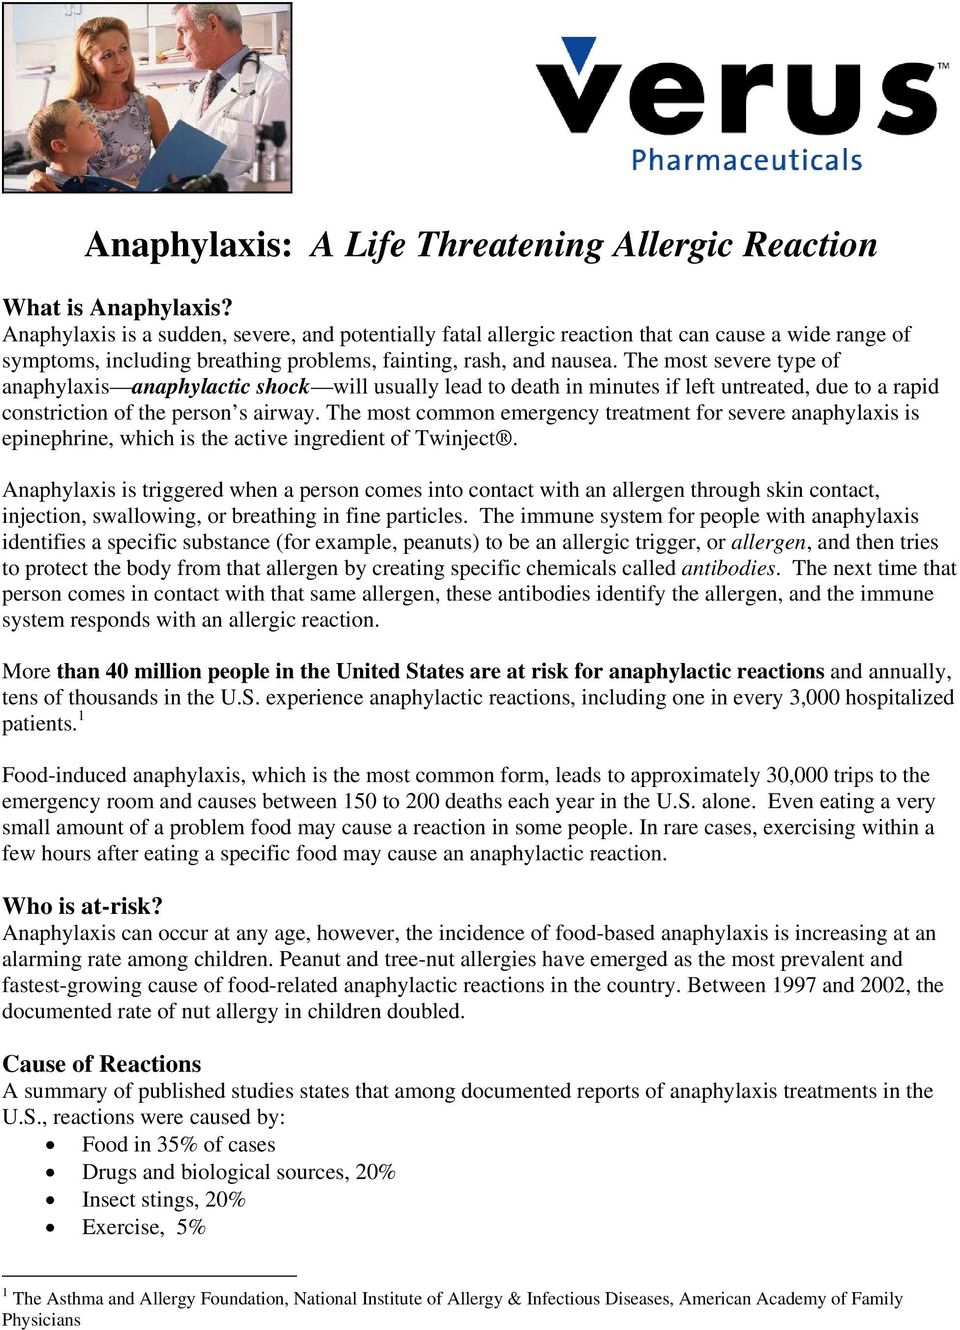 The most severe type of anaphylaxis anaphylactic shock will usually lead to death in minutes if left untreated, due to a rapid constriction of the person s airway.